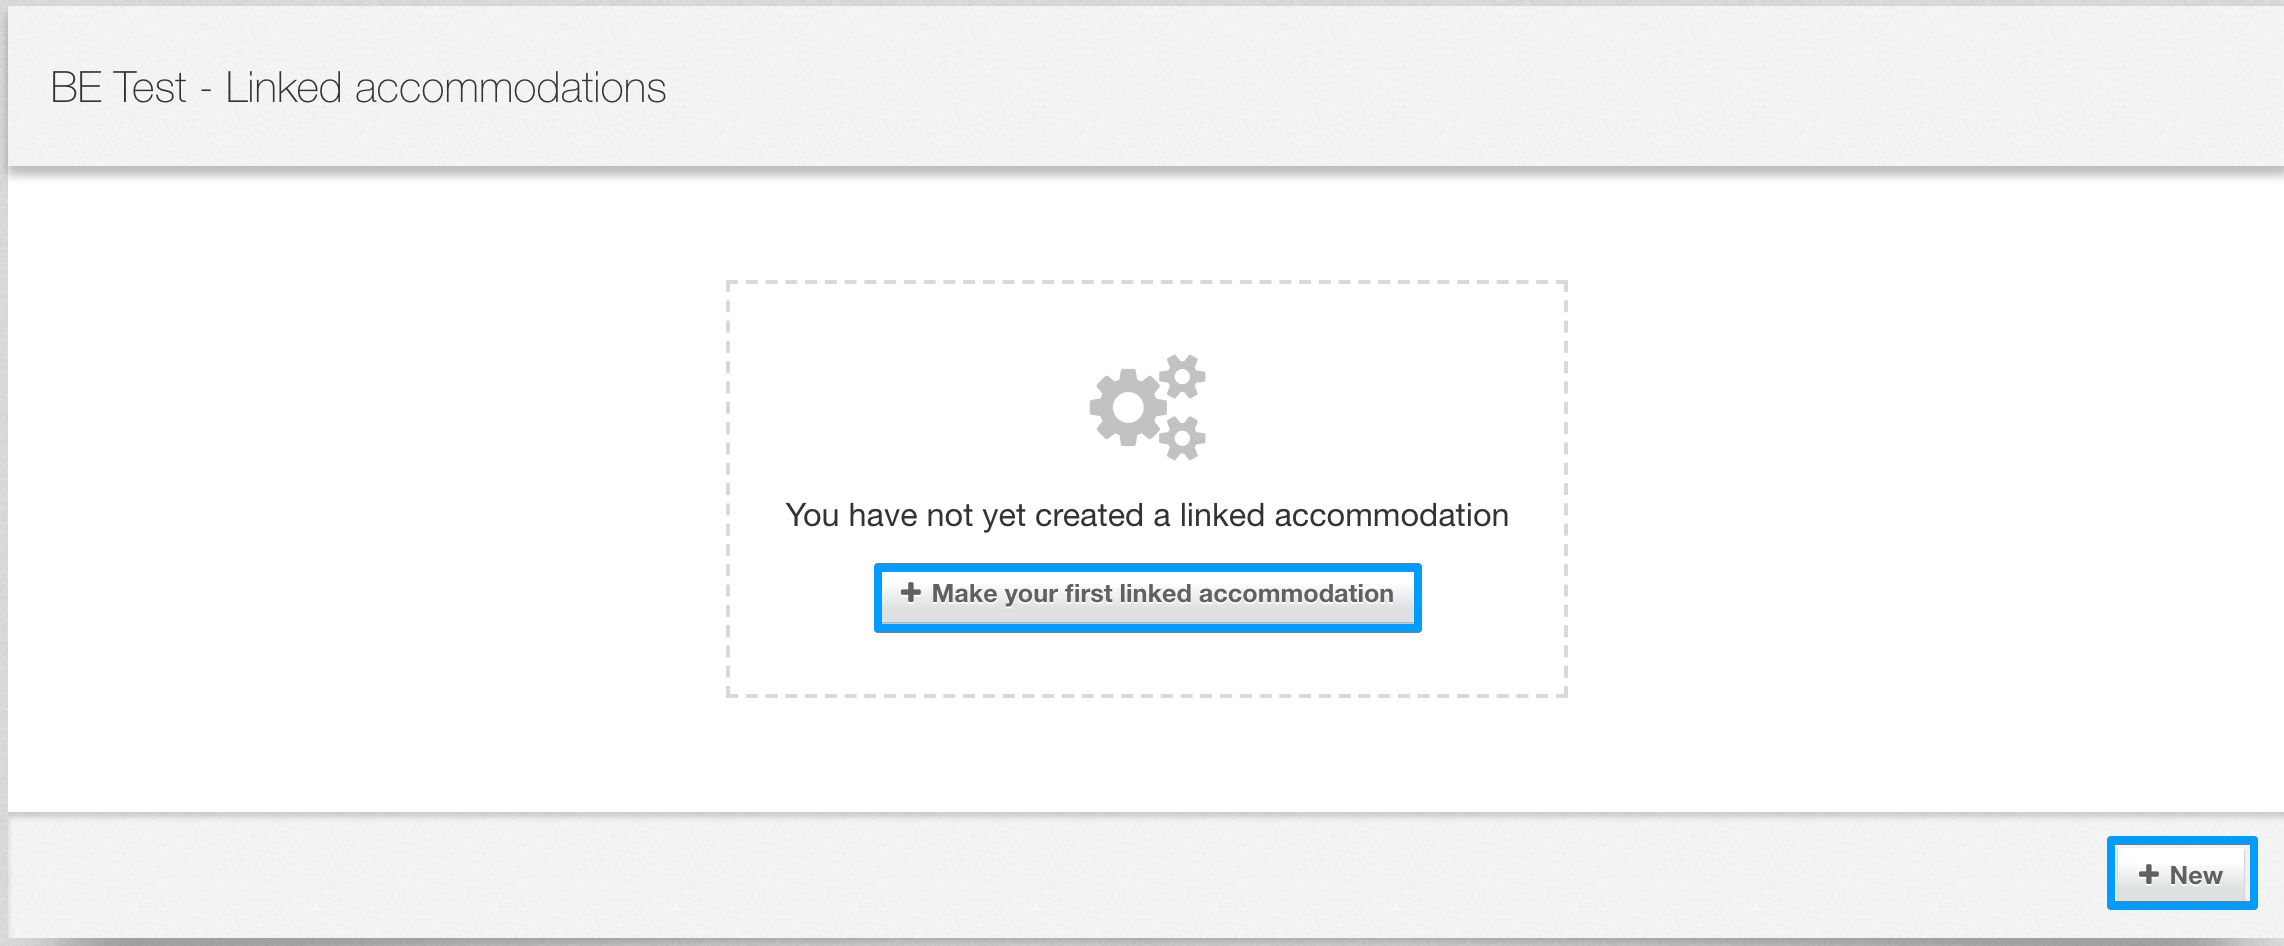 Link accommodations